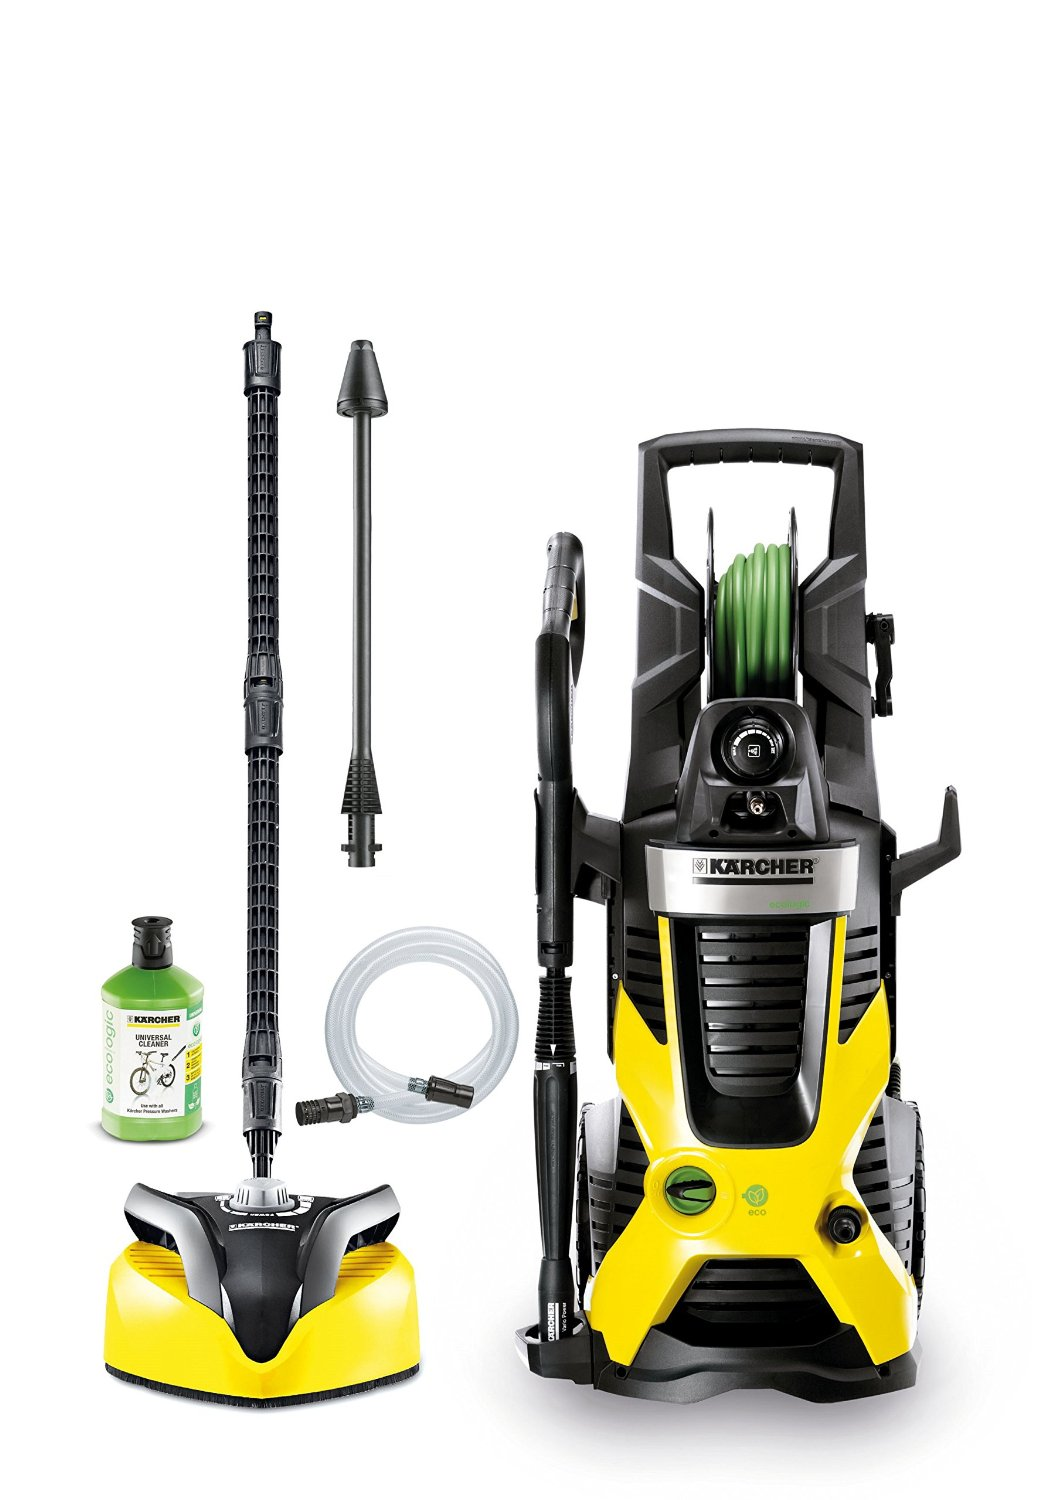 power washers at lowes latest electric pressure washer with power washers at lowes free a. Black Bedroom Furniture Sets. Home Design Ideas